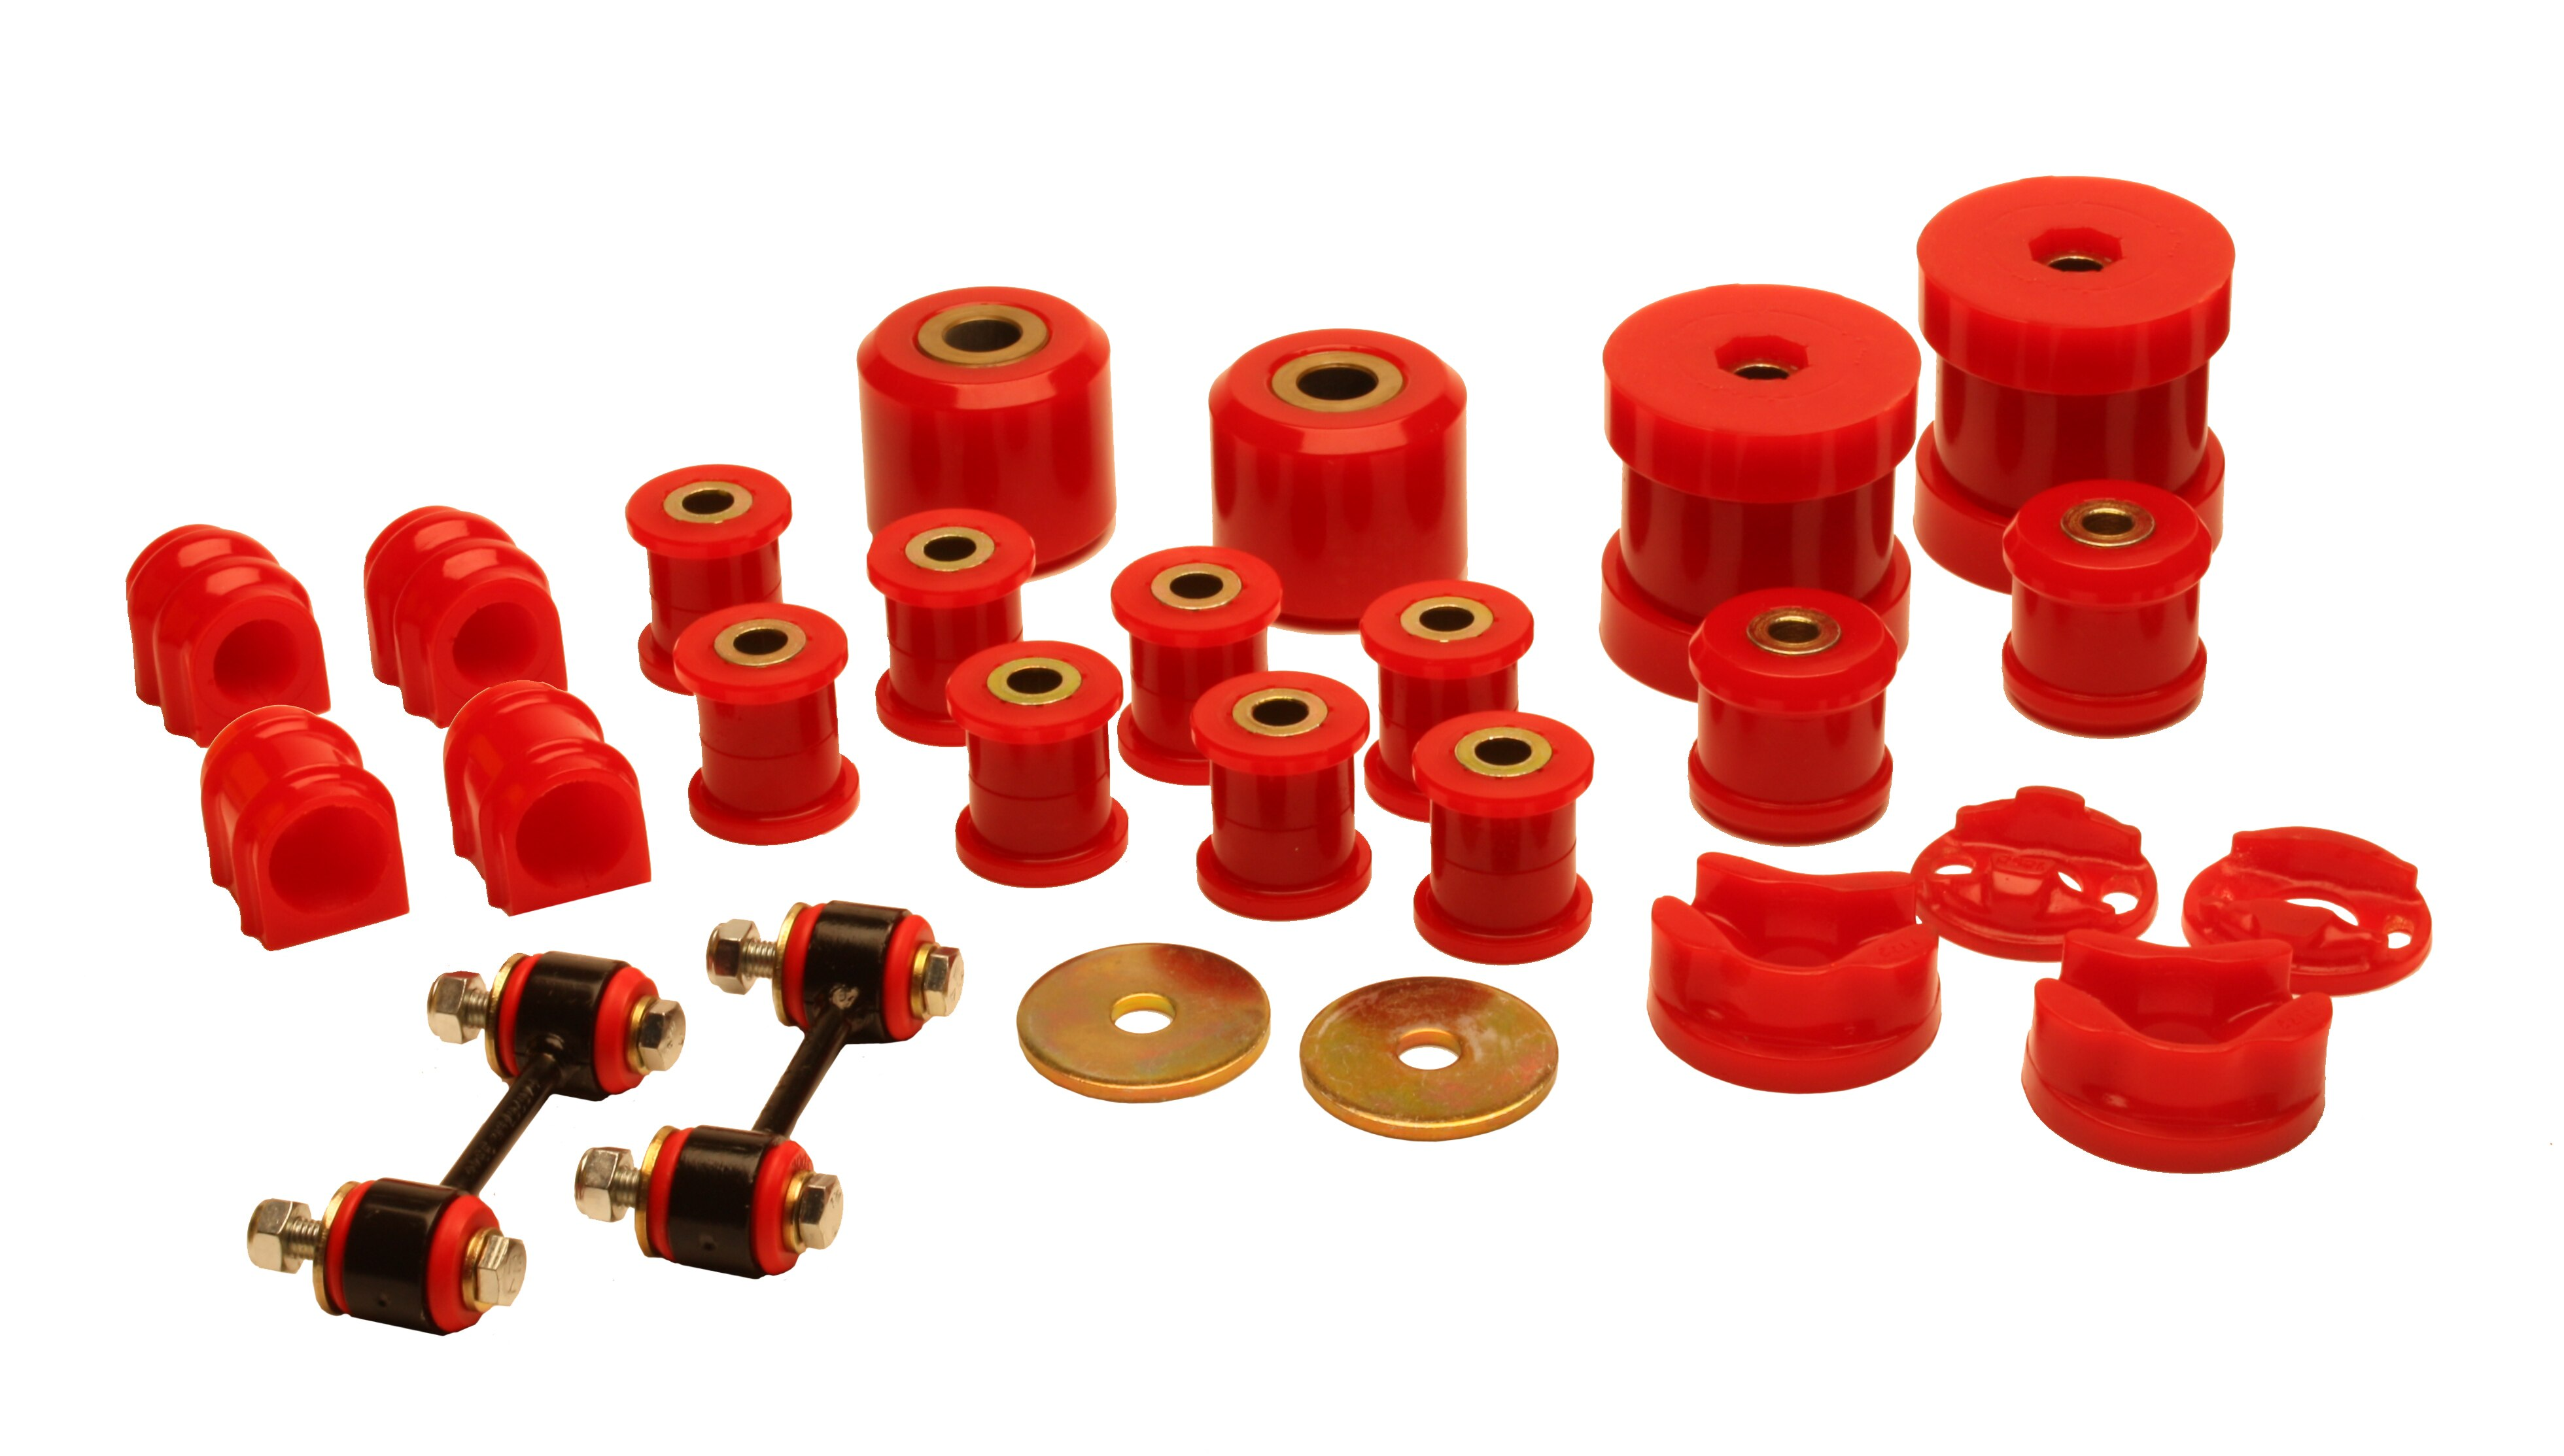 lrmp_1005_01_z-camaro_full_kit-bushings2